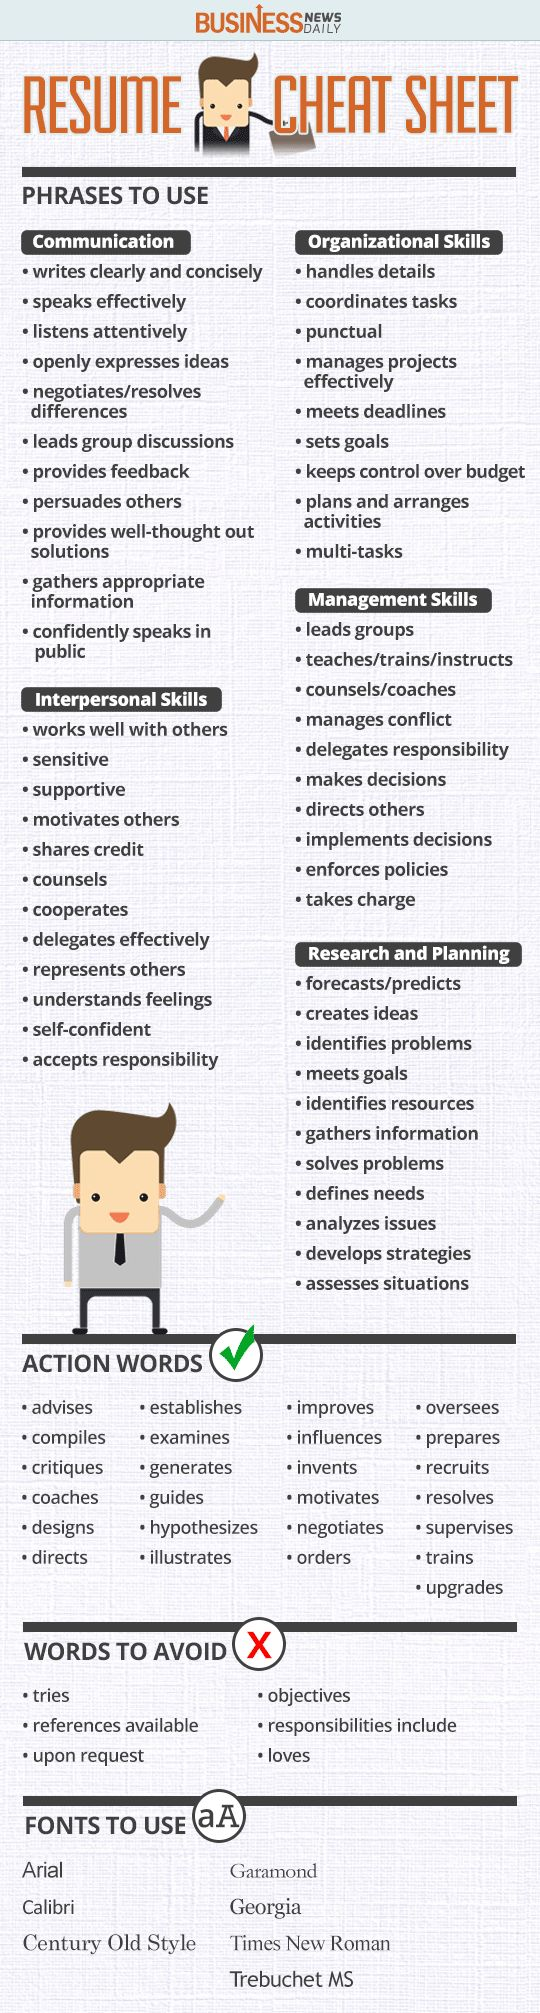 Opposenewapstandardsus  Surprising  Ideas About Resume On Pinterest  Cv Format Resume  With Excellent Resume Cheat Sheet Infographic Andrews Almost Done With A Complete Unit On Employment Which With Enchanting Supply Technician Resume Also Lvn Resume Sample In Addition Resume Housekeeping And Sample Resume Examples As Well As Secretary Resume Objective Additionally Sample Of Professional Resume From Pinterestcom With Opposenewapstandardsus  Excellent  Ideas About Resume On Pinterest  Cv Format Resume  With Enchanting Resume Cheat Sheet Infographic Andrews Almost Done With A Complete Unit On Employment Which And Surprising Supply Technician Resume Also Lvn Resume Sample In Addition Resume Housekeeping From Pinterestcom